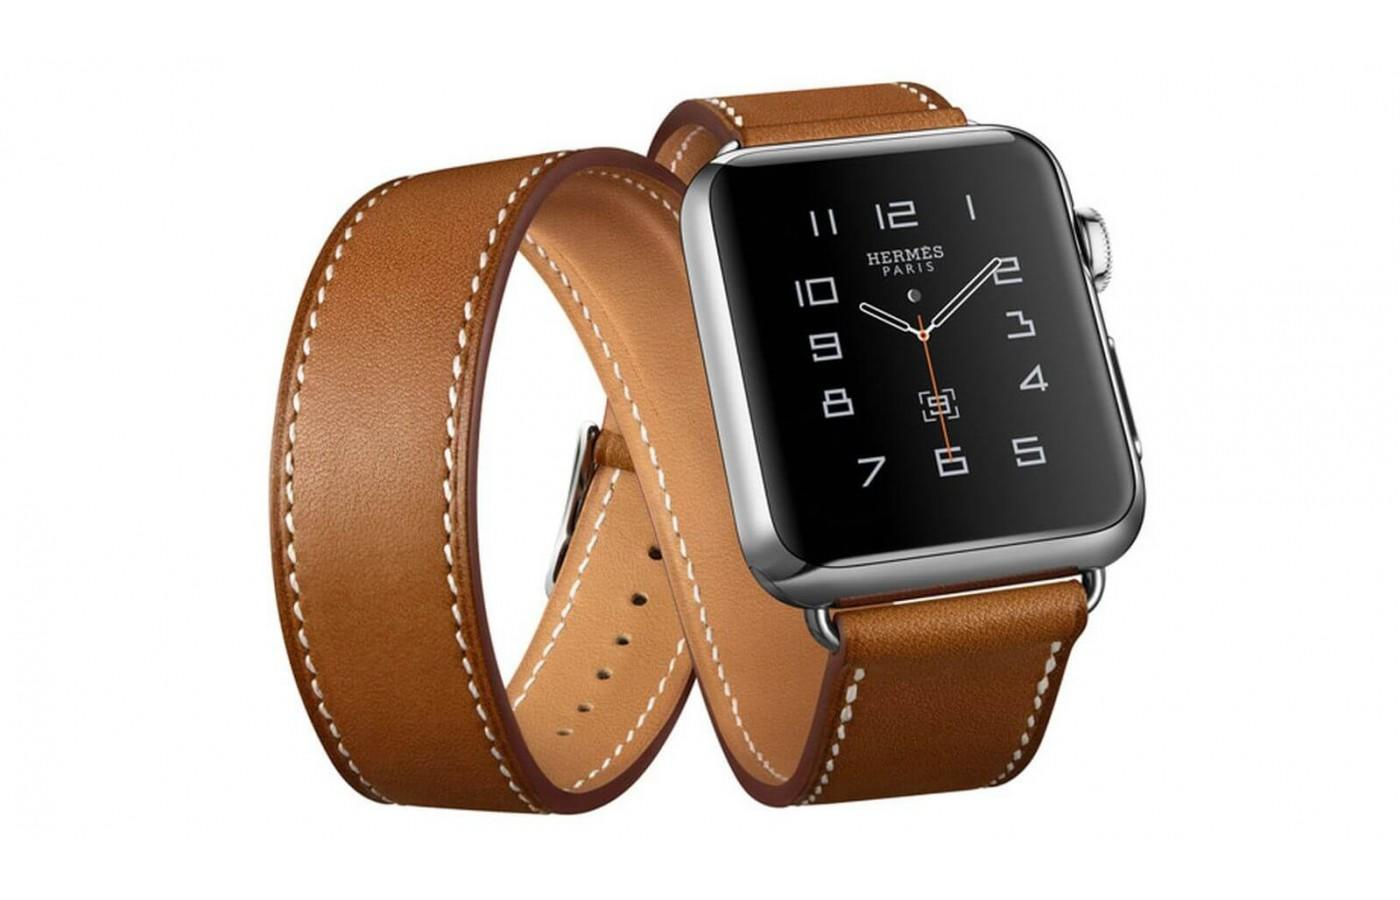 Apple Watch Hermes has a distinct look